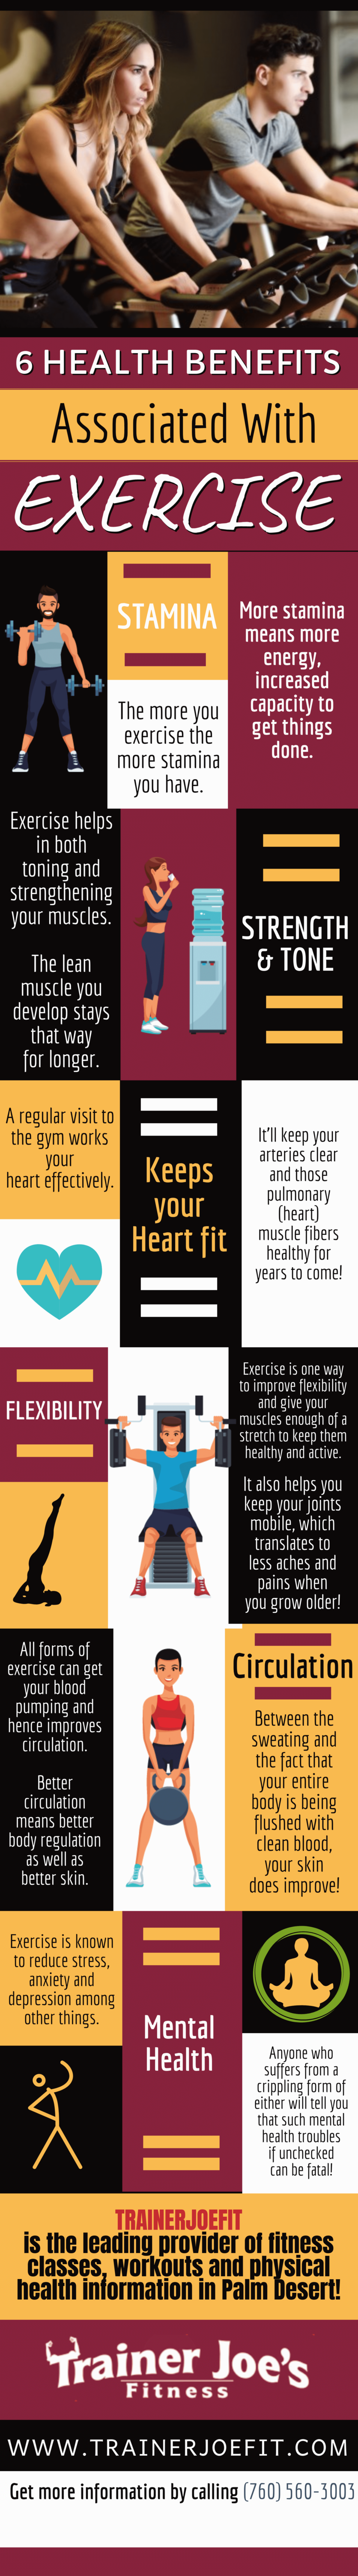 6 Health Benefits Associated with Exercise